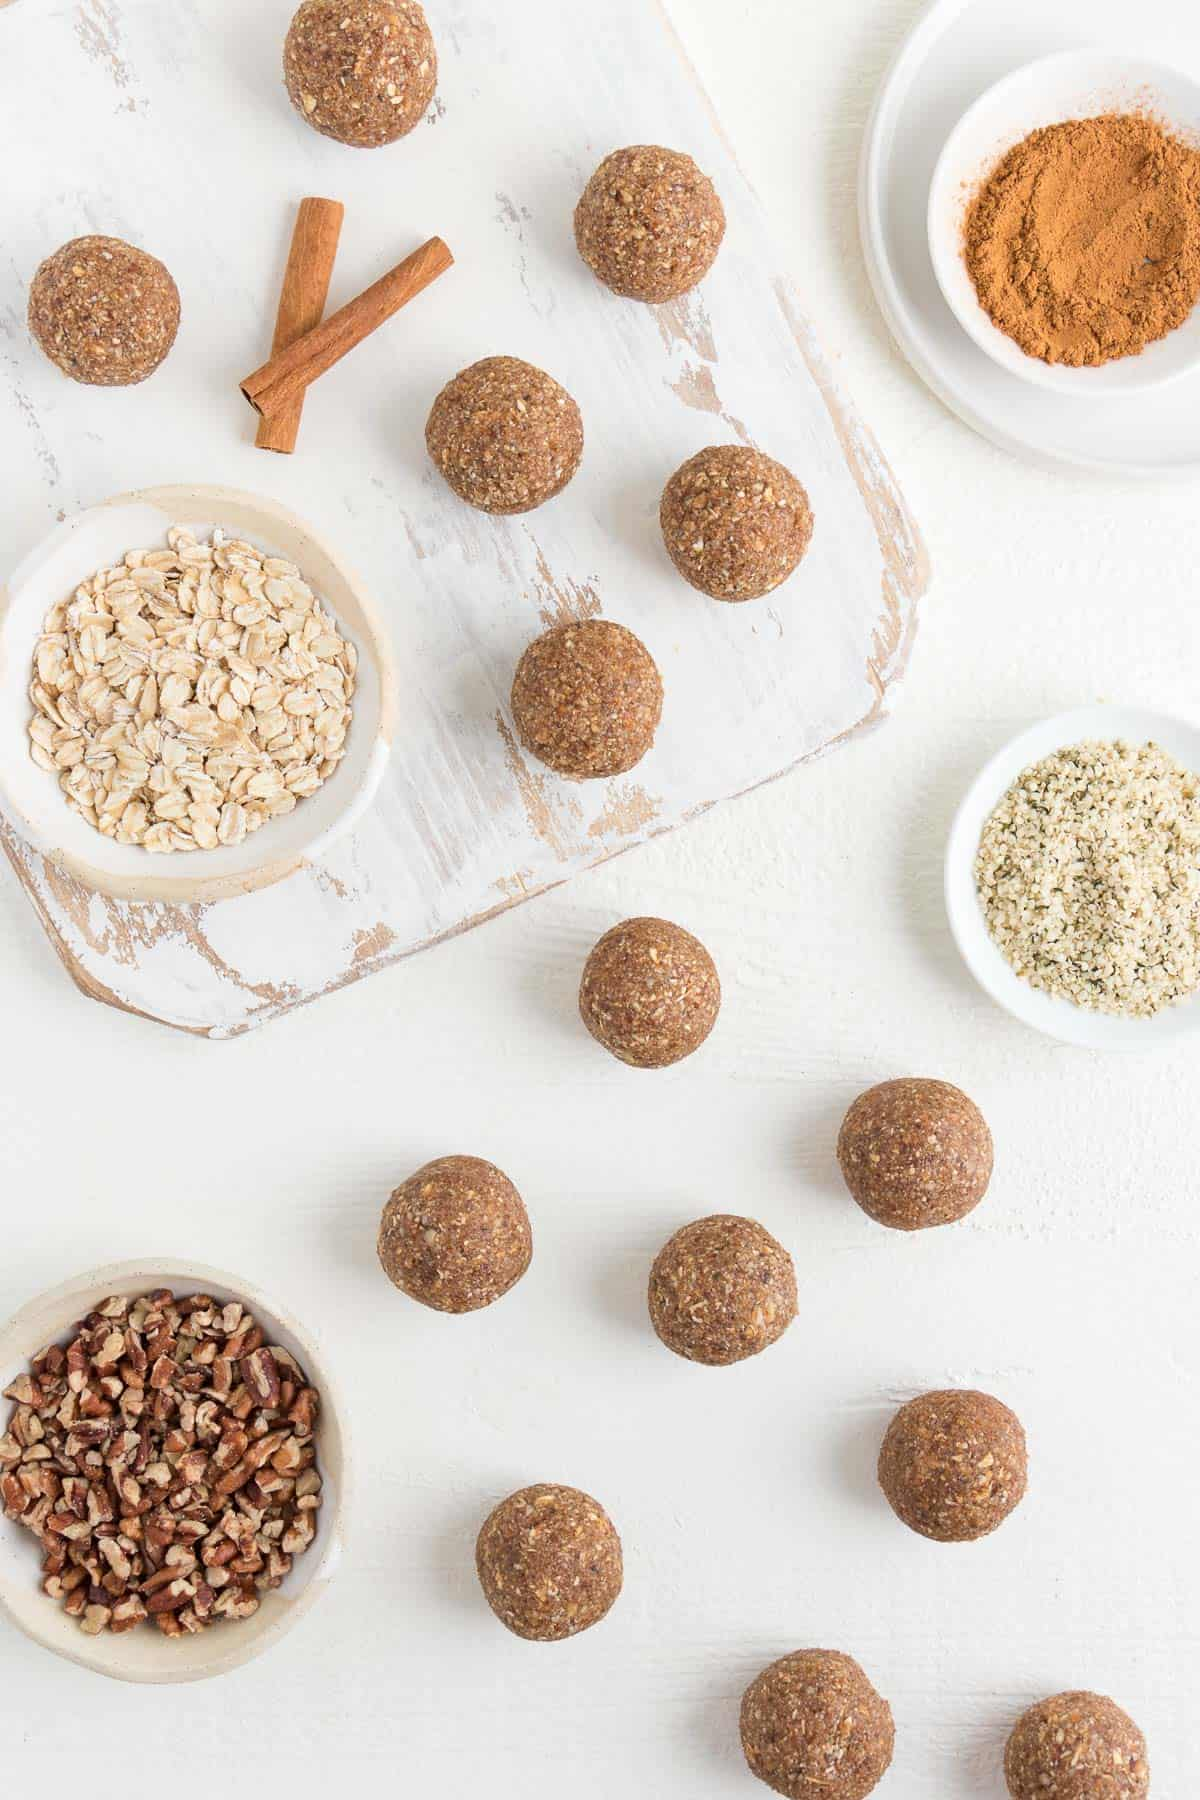 bliss balls on a white distressed cutting board alongside oats, pecans, and hemp seeds